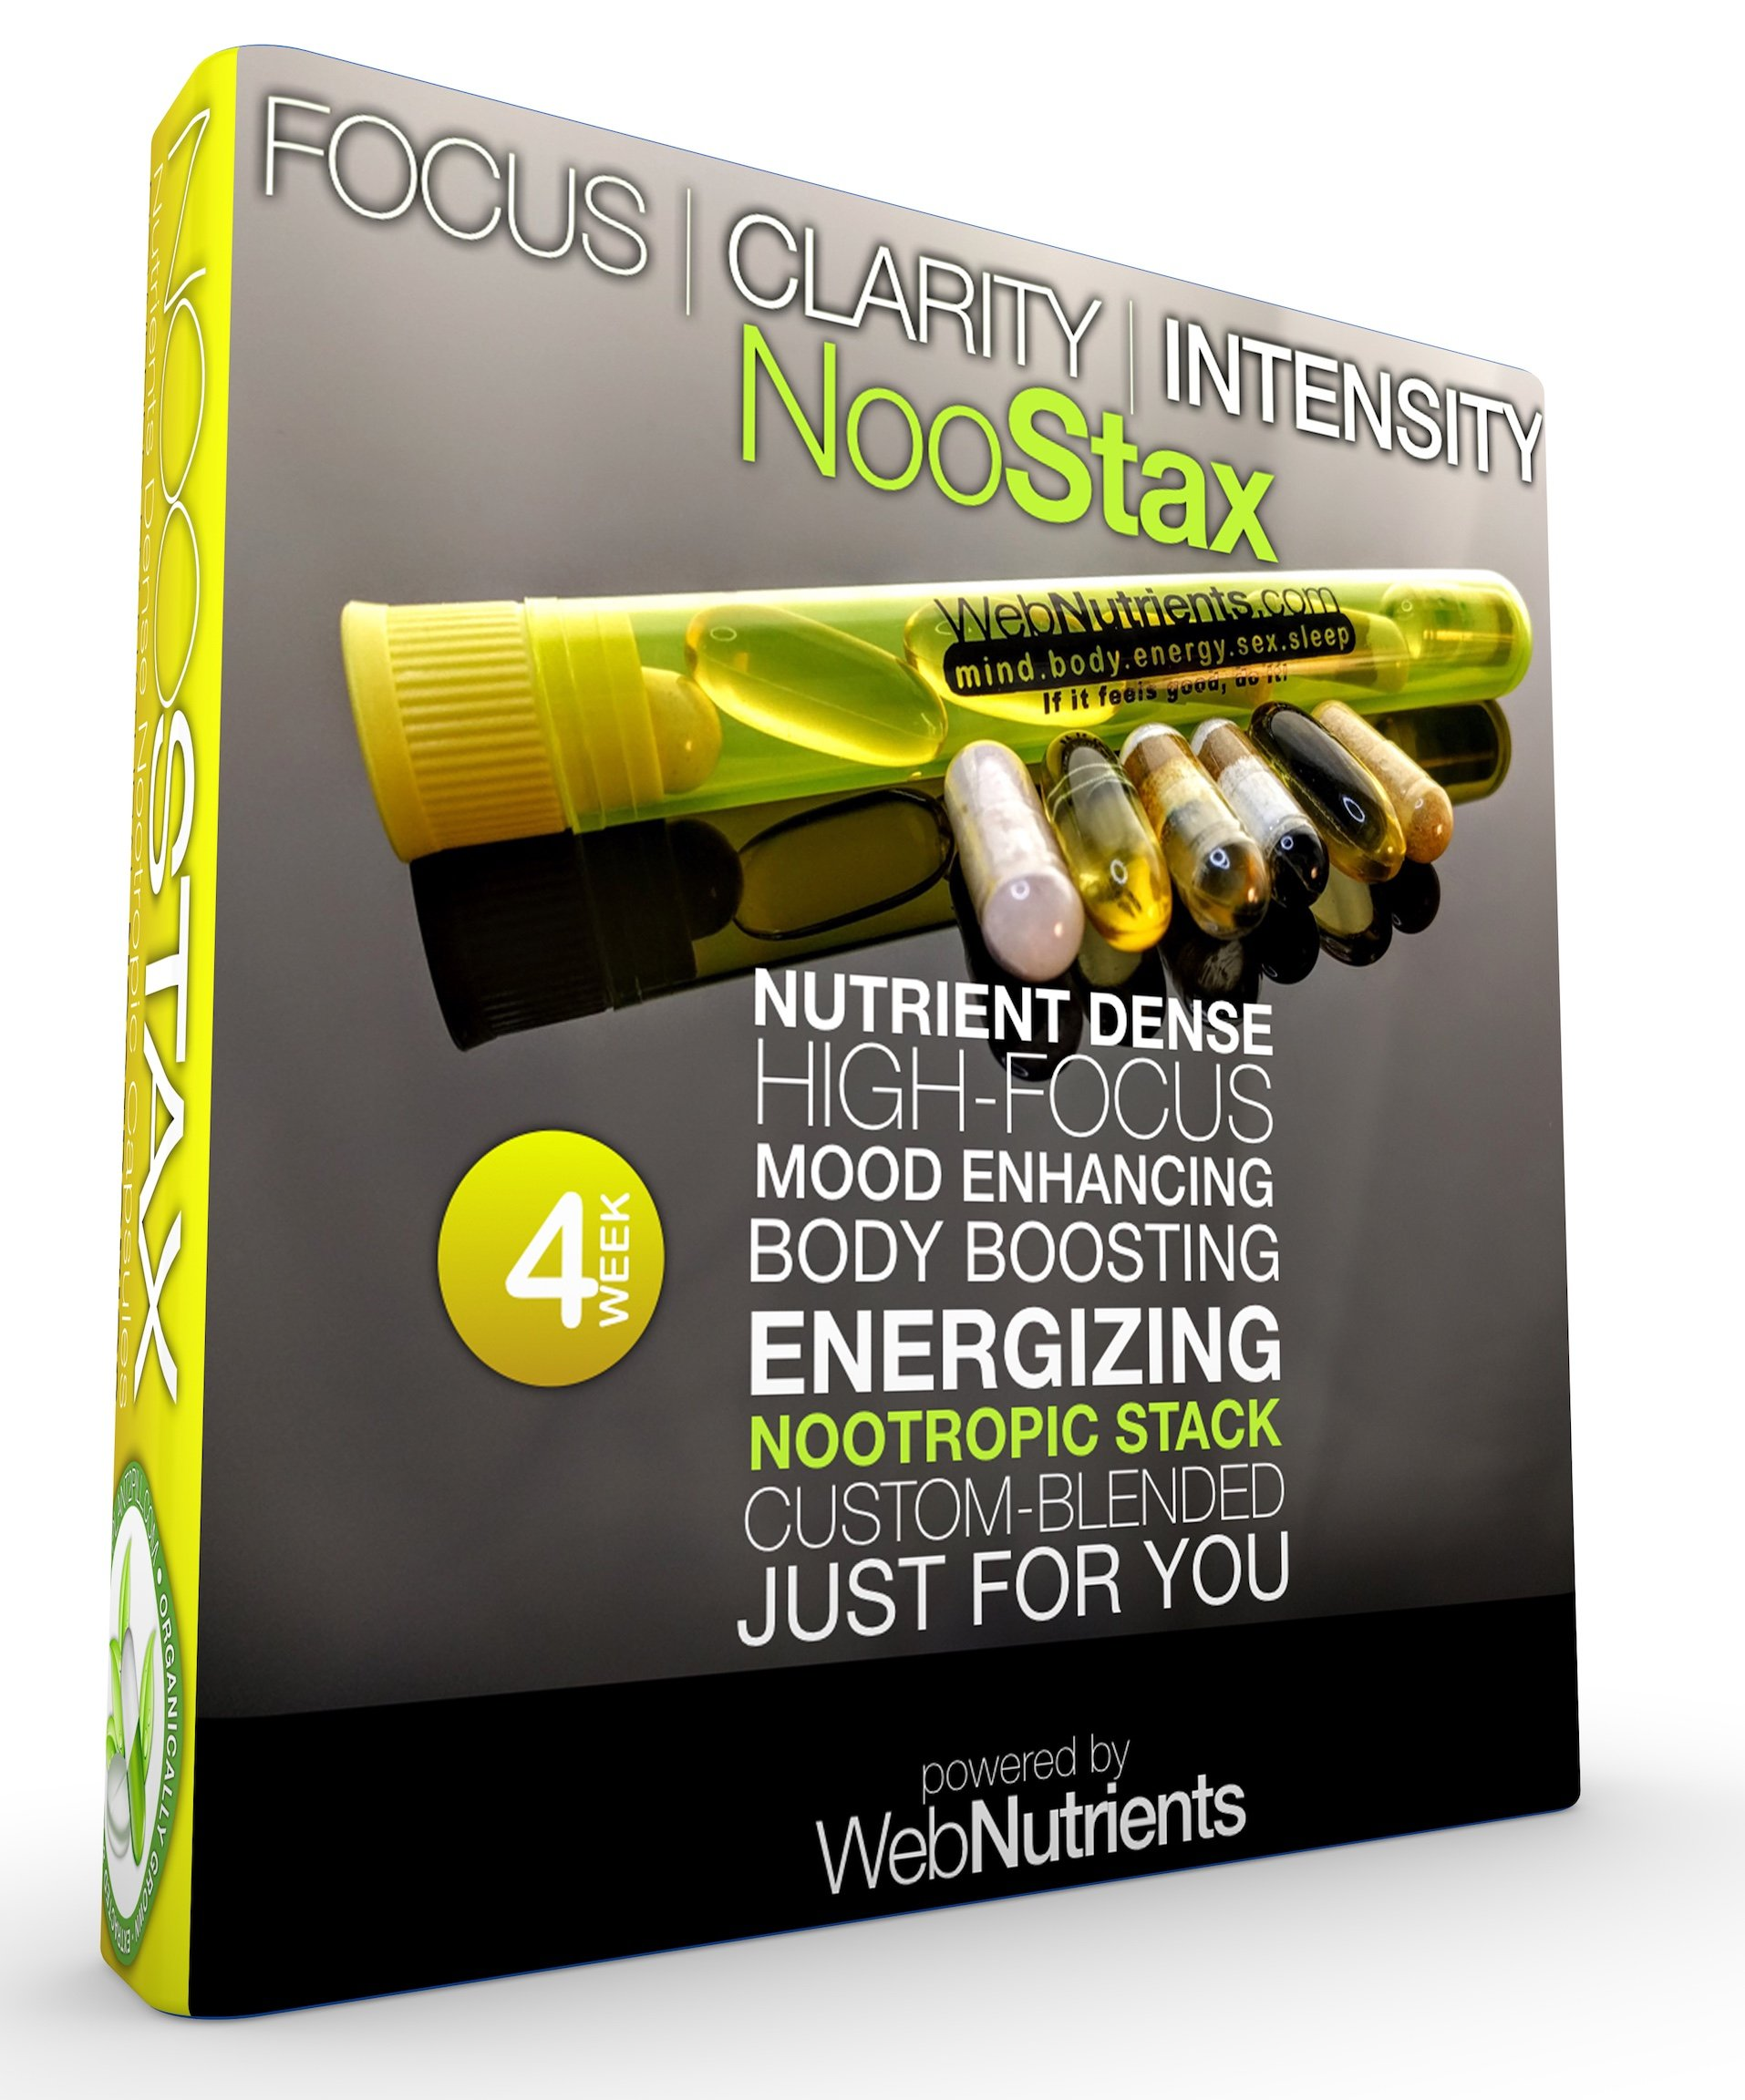 NooStax NZT-48- 20 Doses/4 Weeks - Powerful Nootropic Brain-Boosting Capsule Stacks - All The Nutrition You Need+The World's Most Powerful Nootropic Stacks in Capsule Form